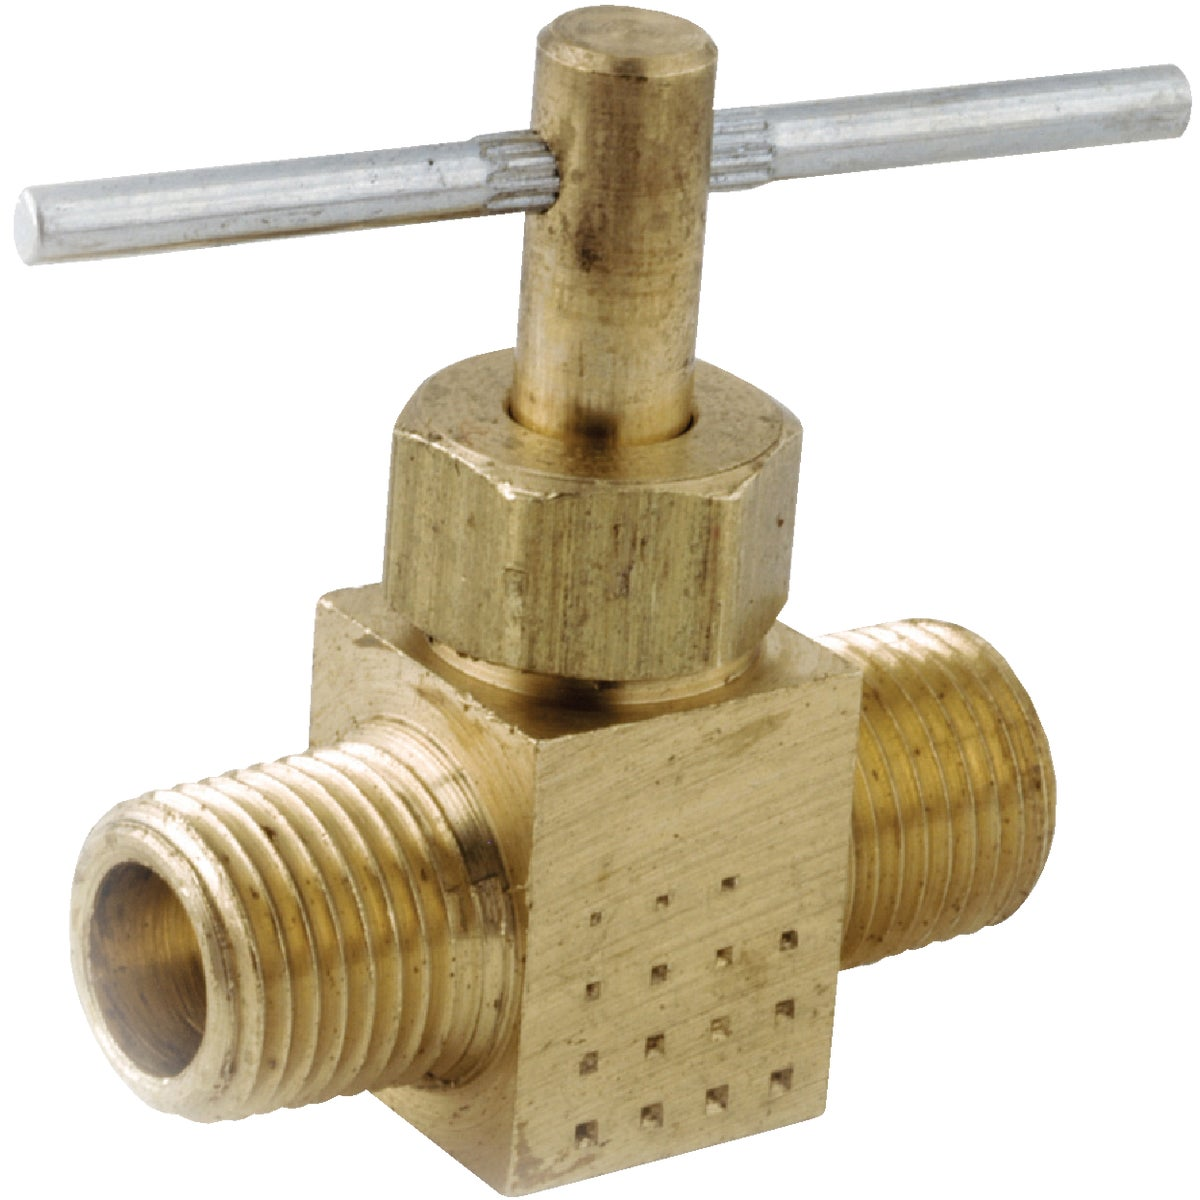 FLF 7110P 1/4 NDL VALVE - 759108-04 by Anderson Metals Corp